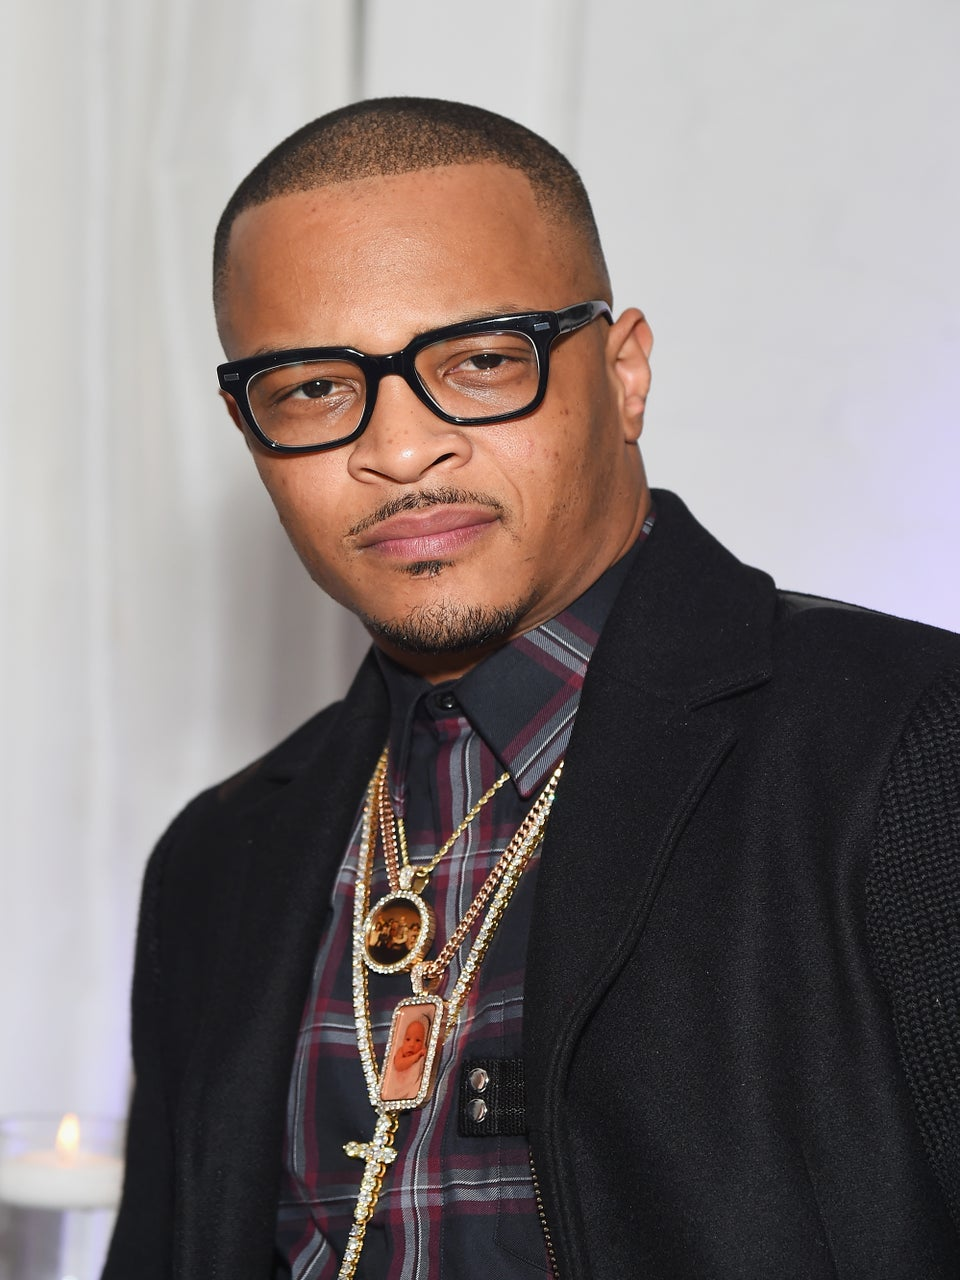 T.I. Sends a Heartfelt Message to His Eldest Son, Messiah: 'Thank You For Changing My Life'